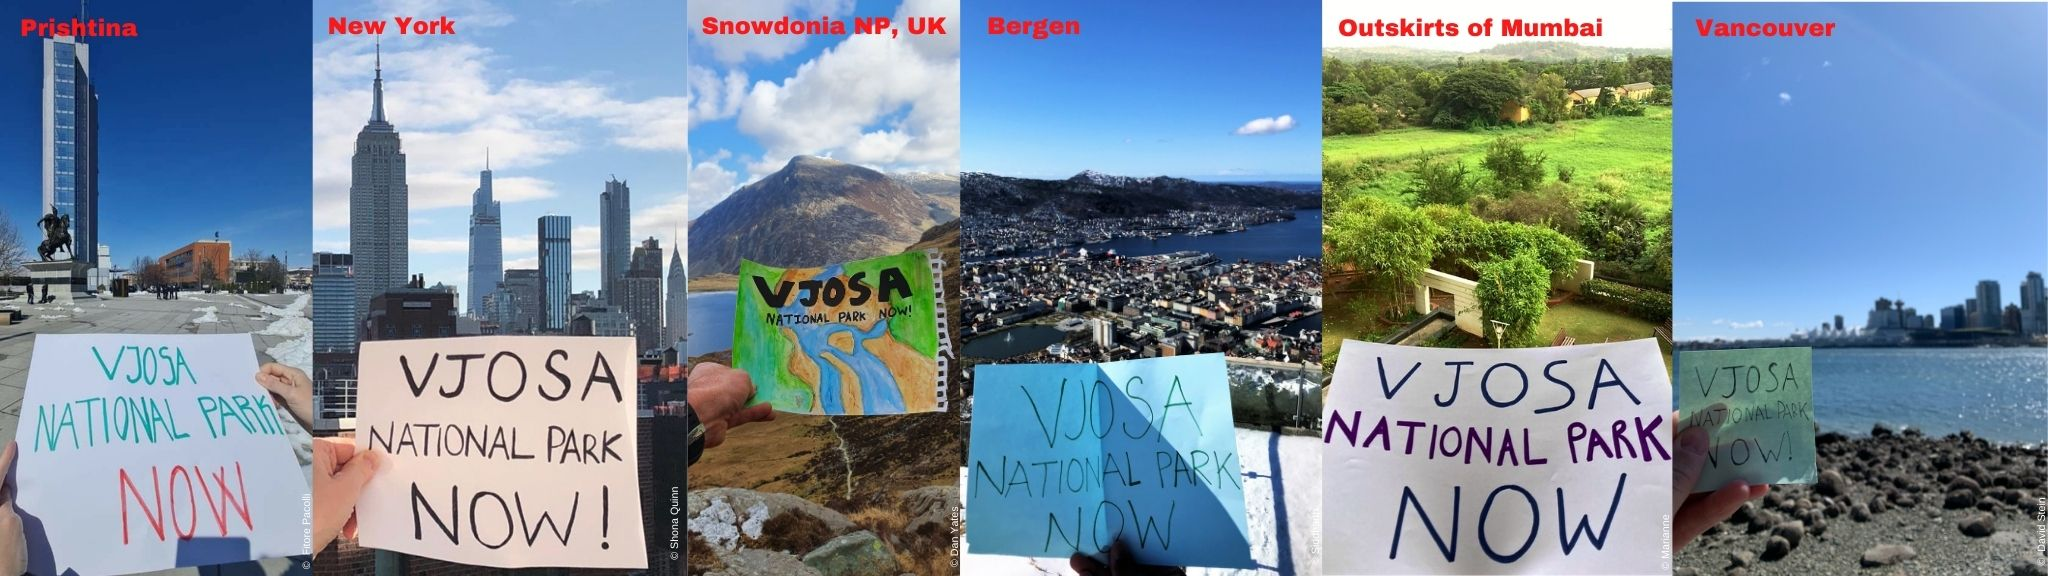 Support for the Vjosa National Park has been pouring in from all around the world. Photos: Pristina © Fitore Pacolli; New York © Shona Quinn; Snowdonia NP, UK © Dan Yates; Bergen © Siddharth; Mumbai © Marianne; Vancouver © David Stein